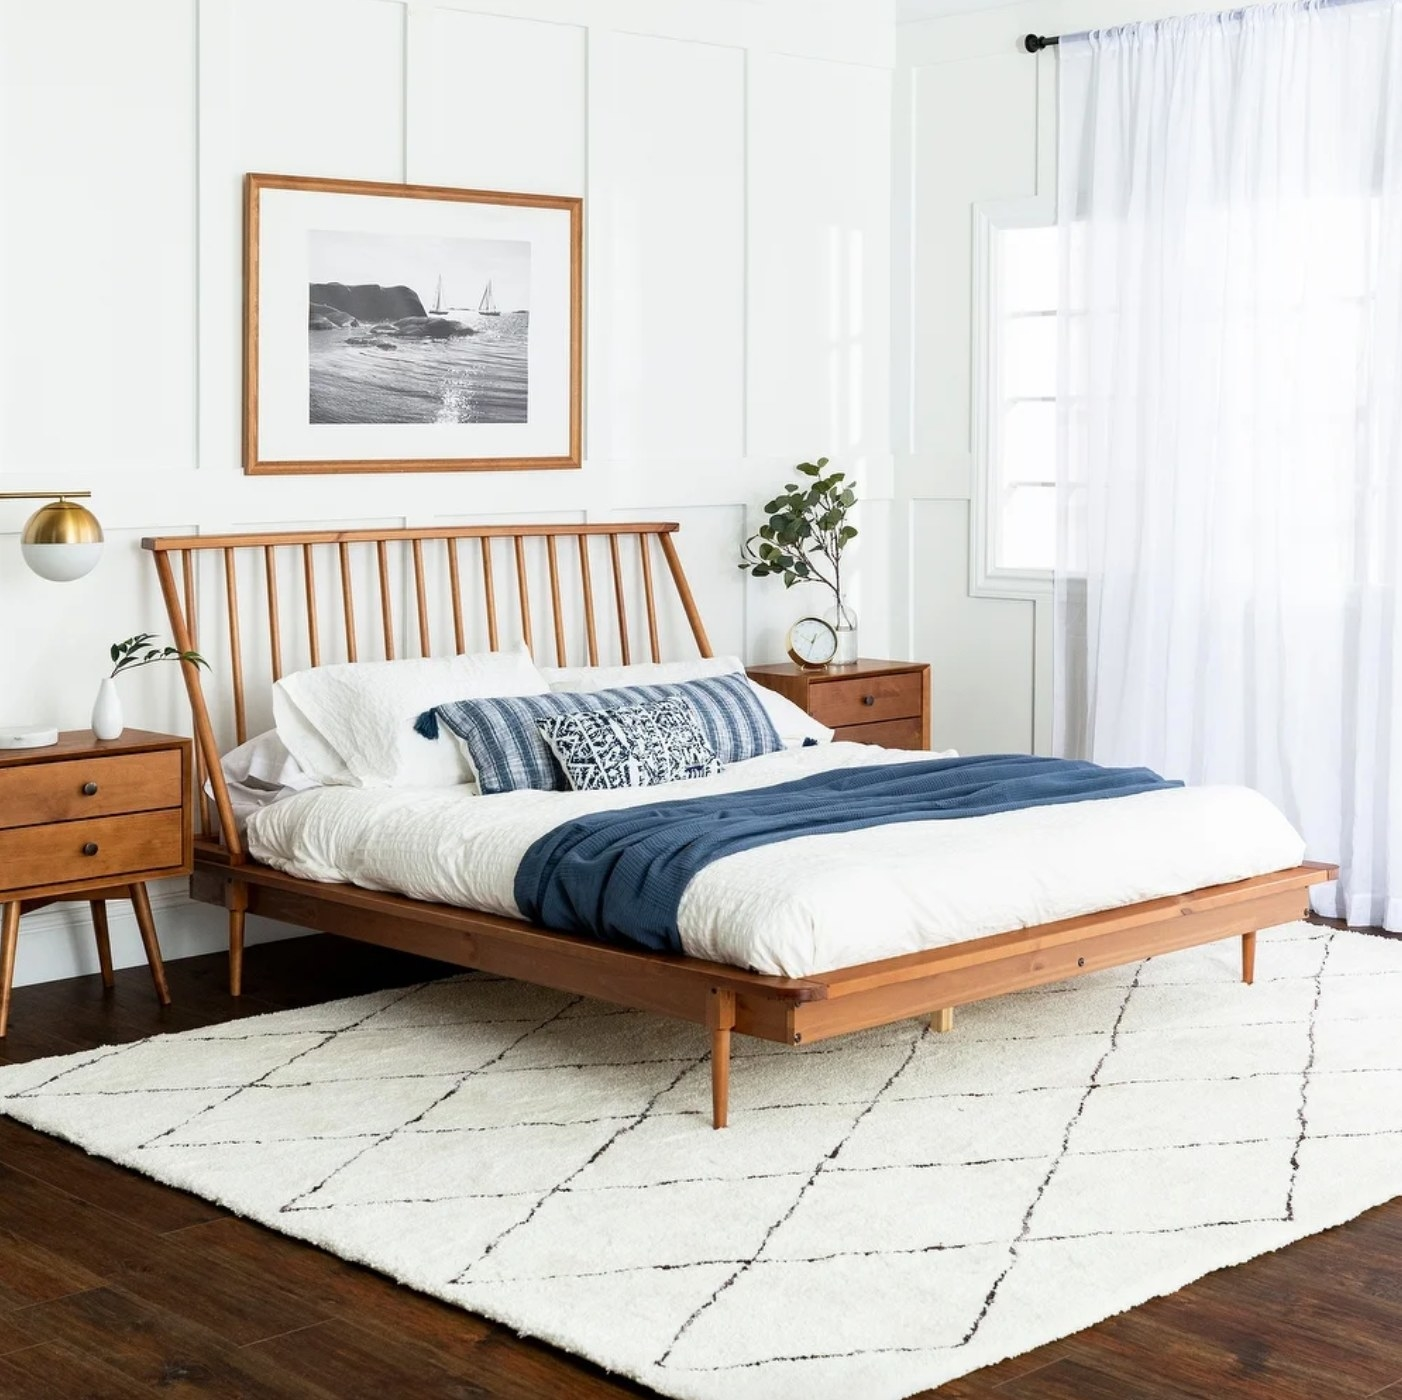 The wood spindle bed in caramel